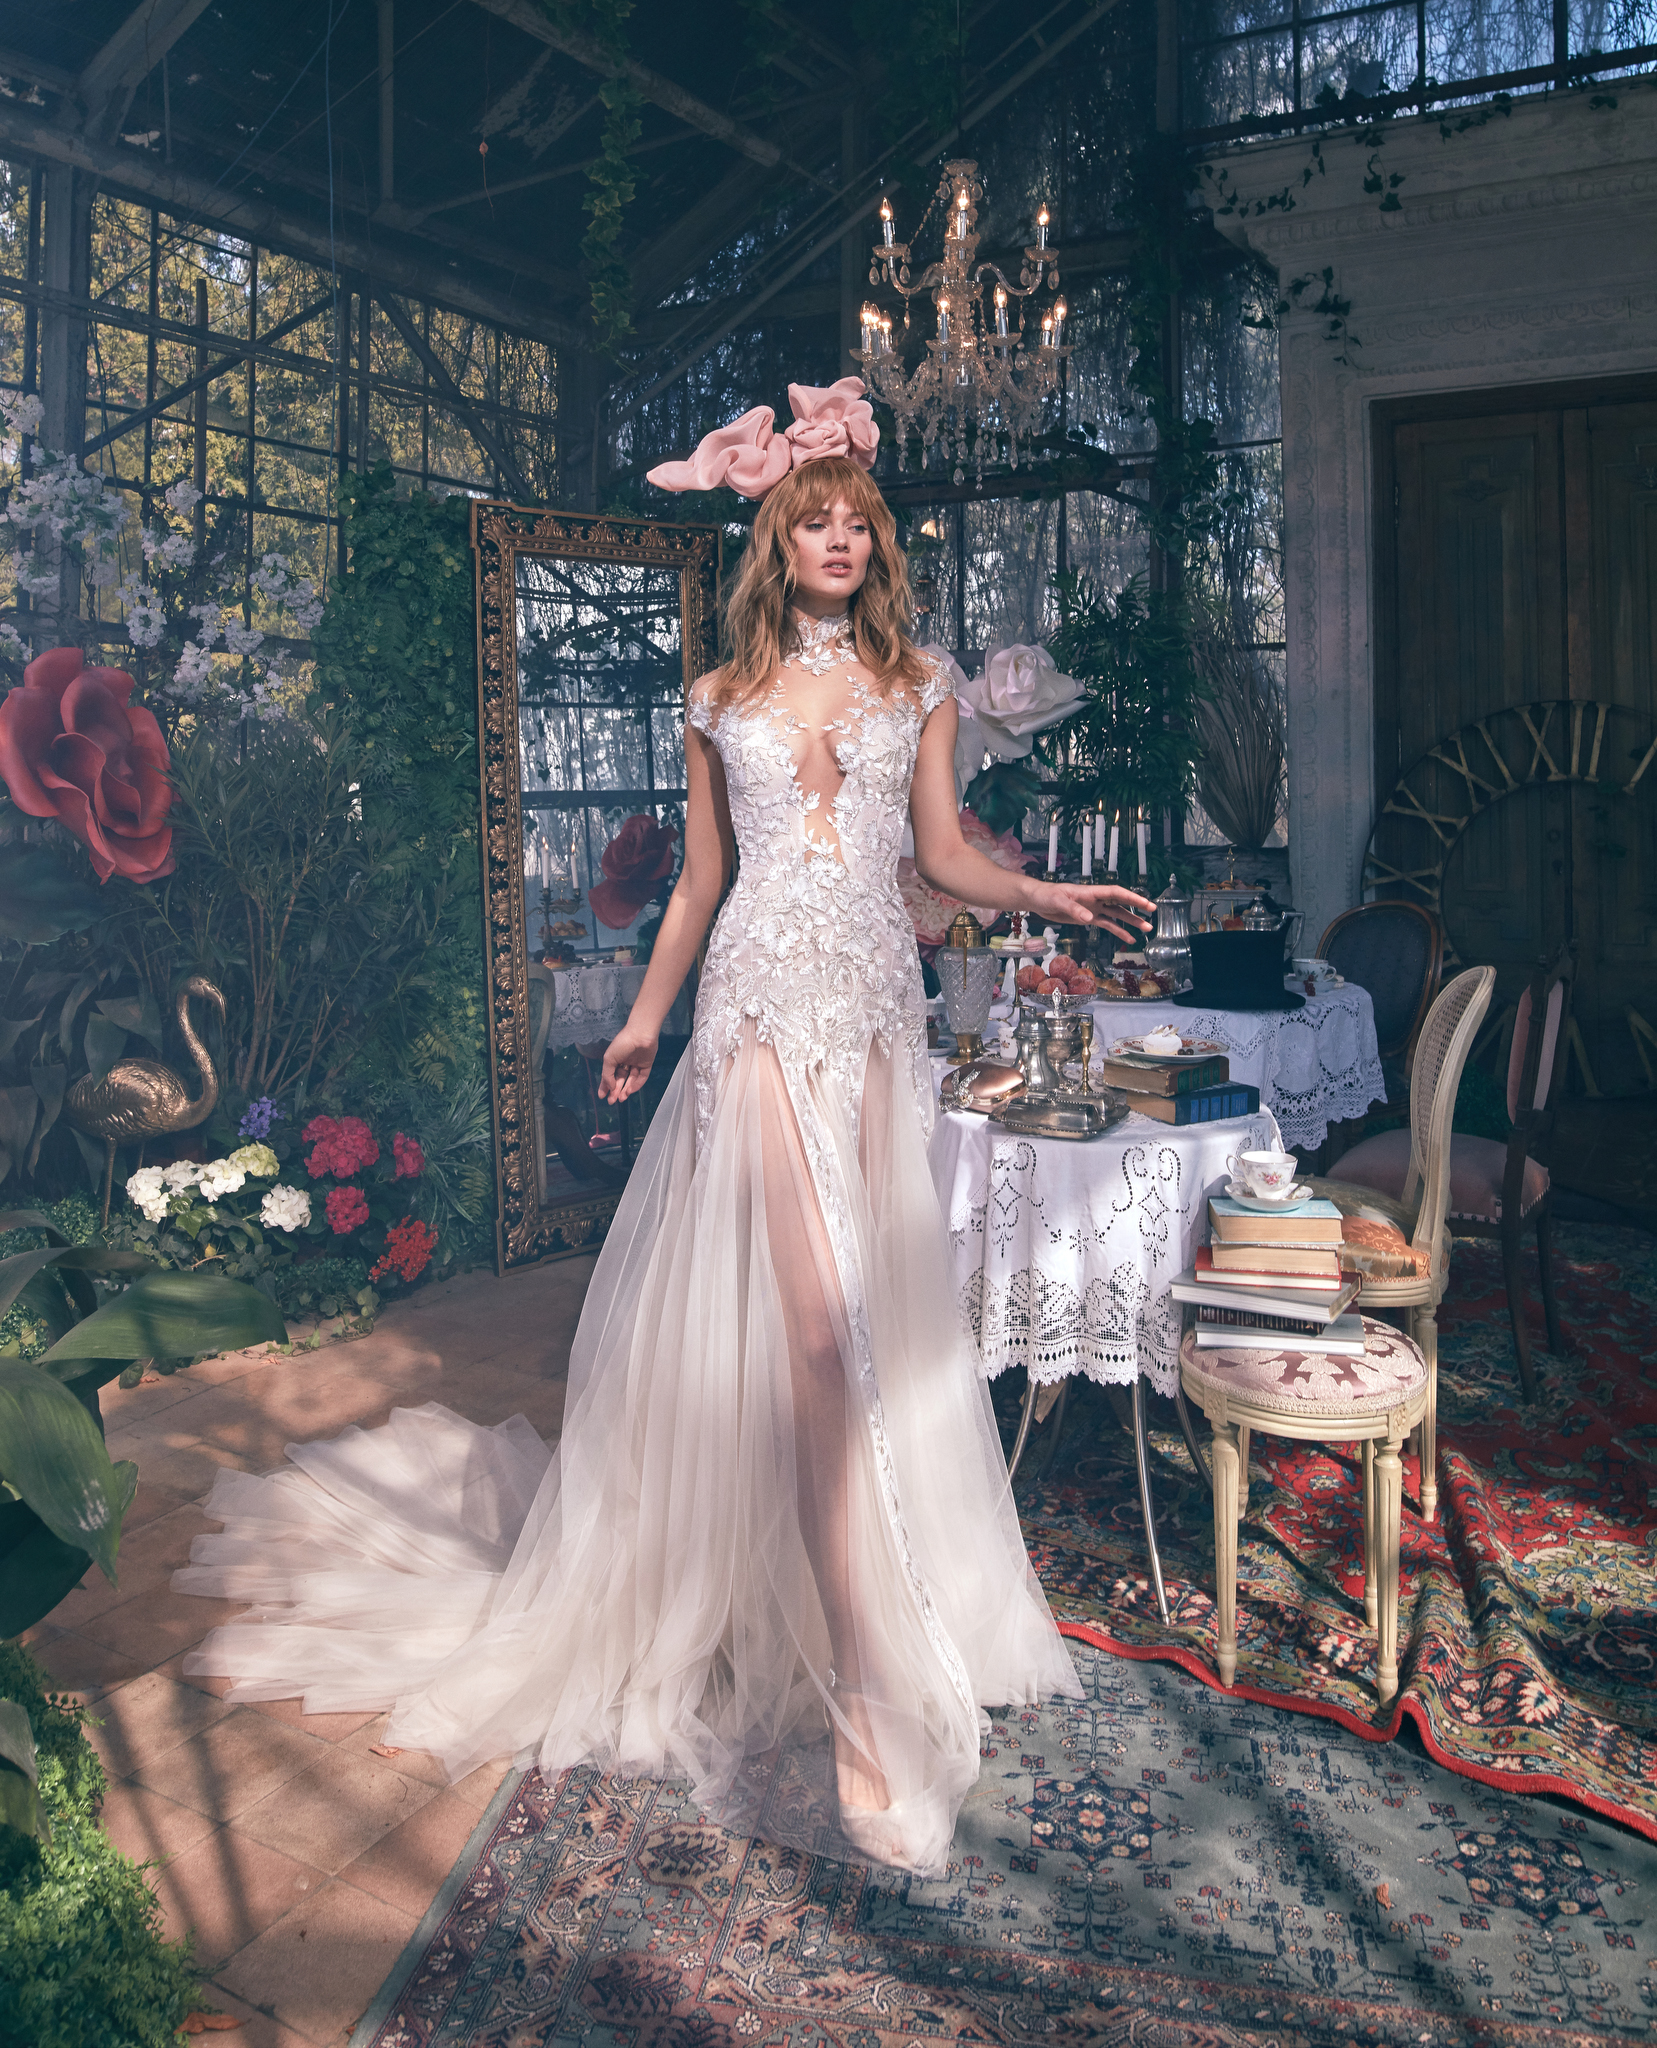 Gala by Galia Lahav Bridal Spring 2020